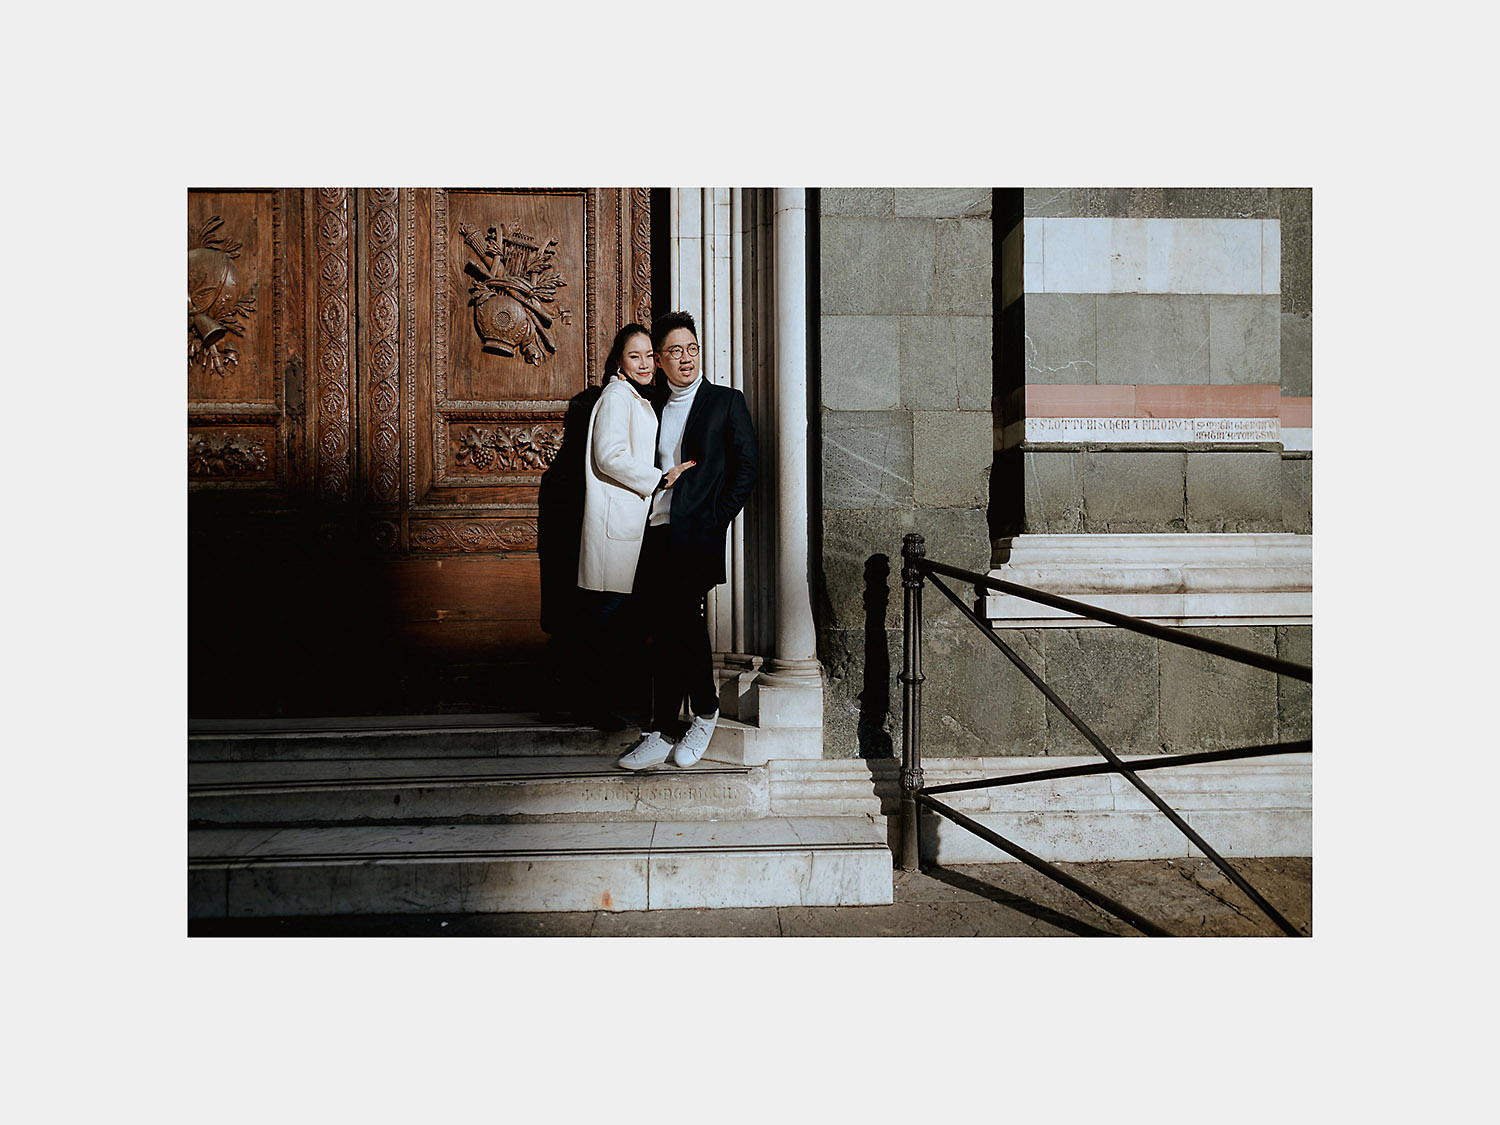 pre wedding photos in florence best couple photographer duomo cattedrale santa maria del fiore